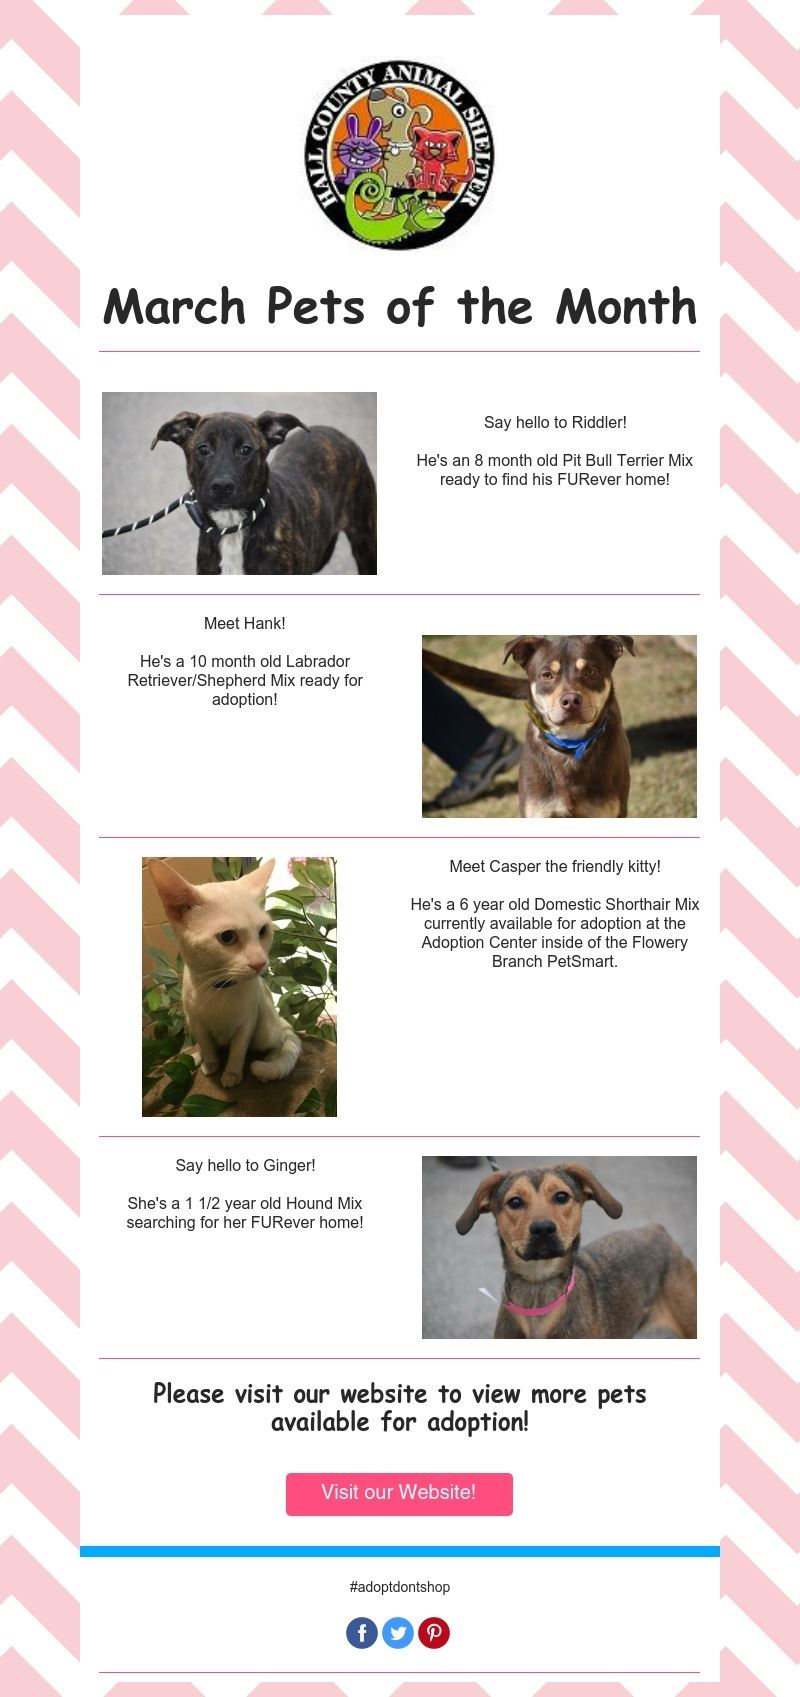 March Pets of the Month 2020